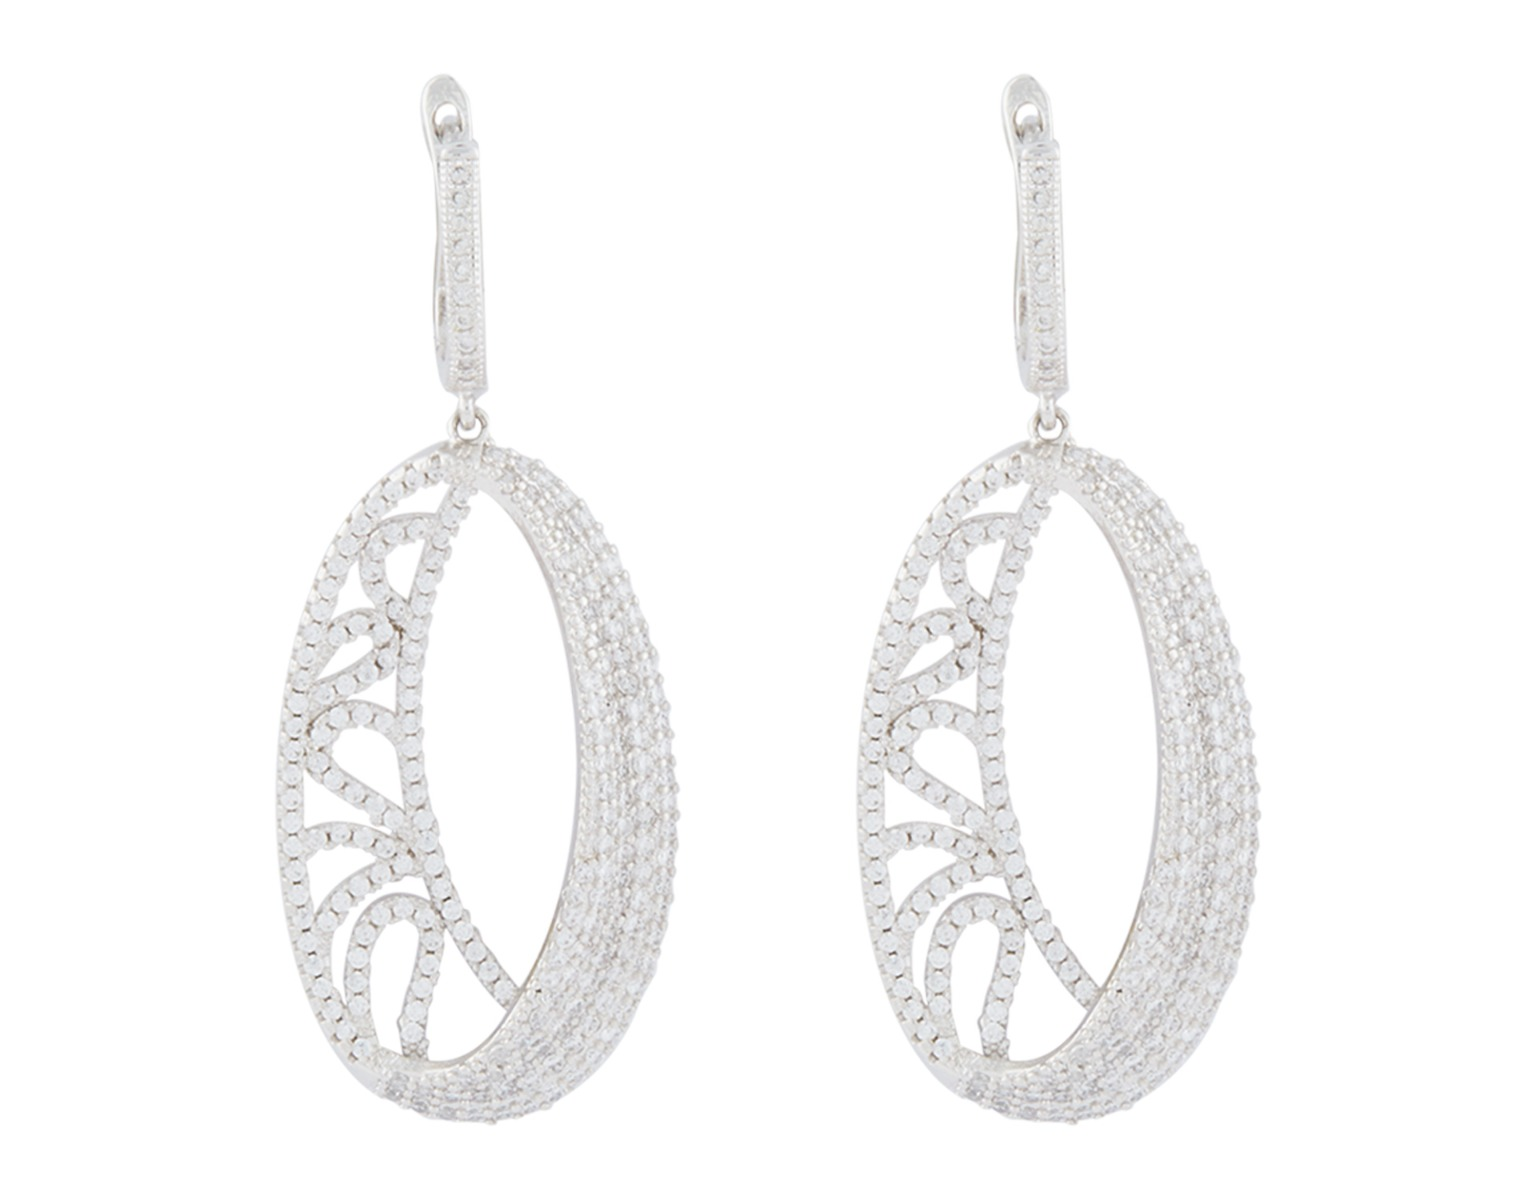 Oval Mesh Earrings